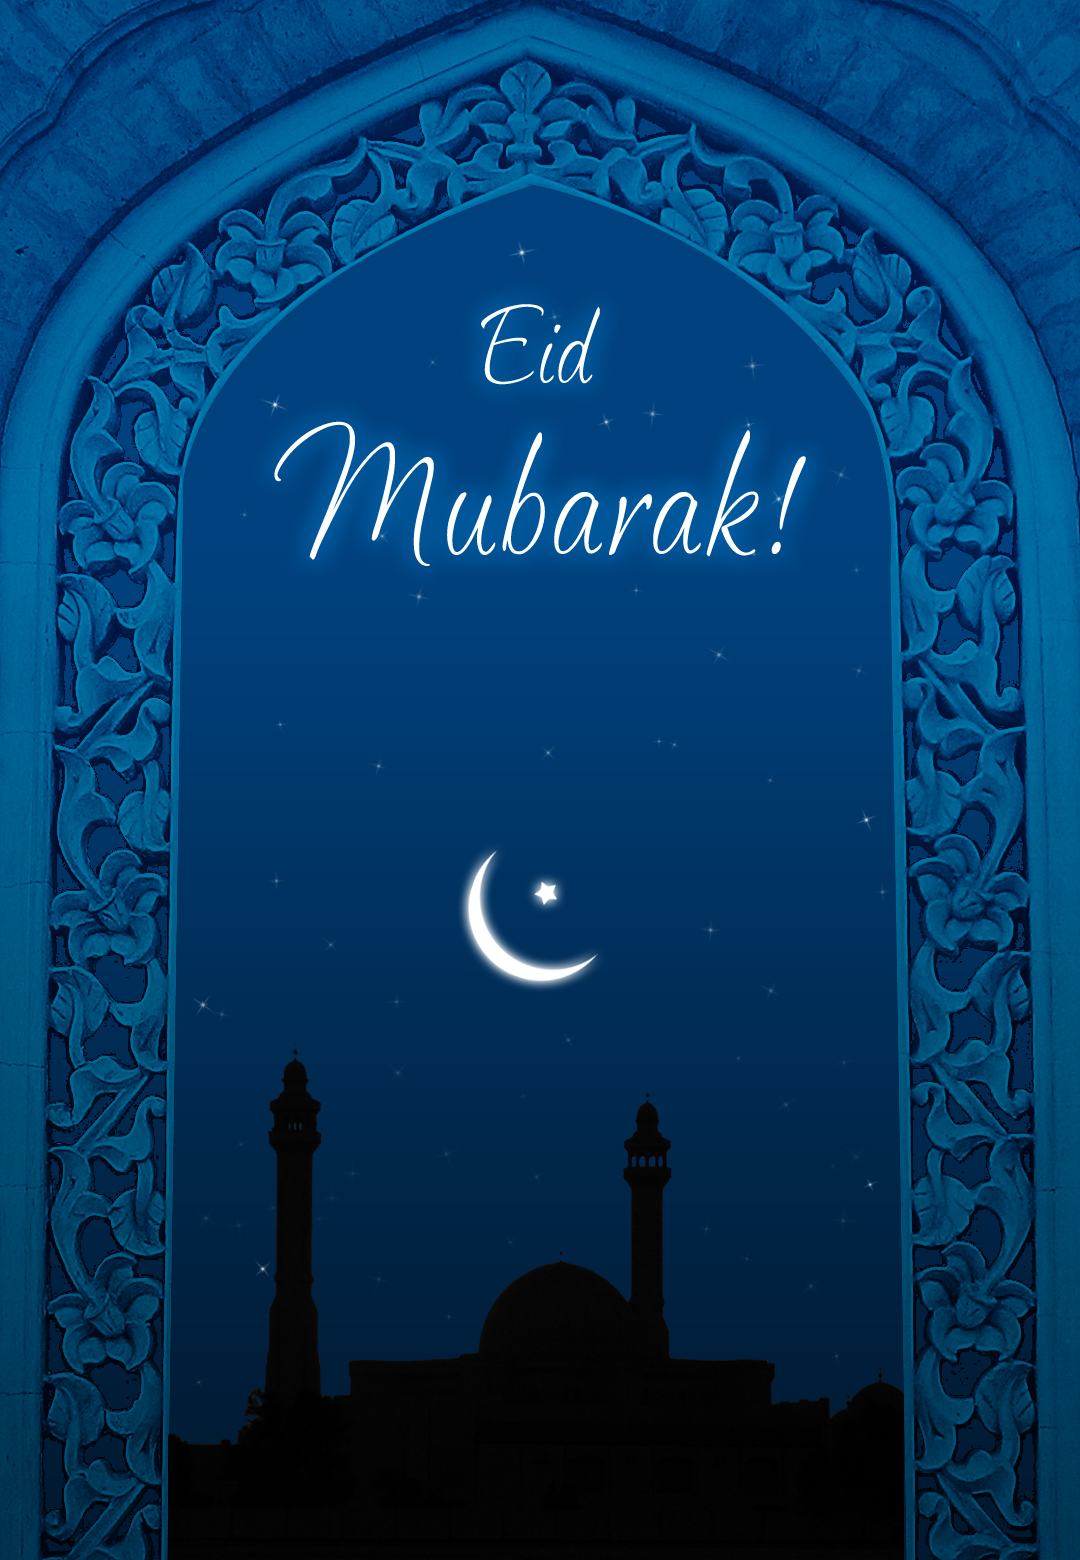 essay on celebration of eid ul fitr The celebration of eid-ul-fitr – the recurring festival they wake up at dawn to get dressed for the celebration of eid-ul-fitr haven't found essay you want.